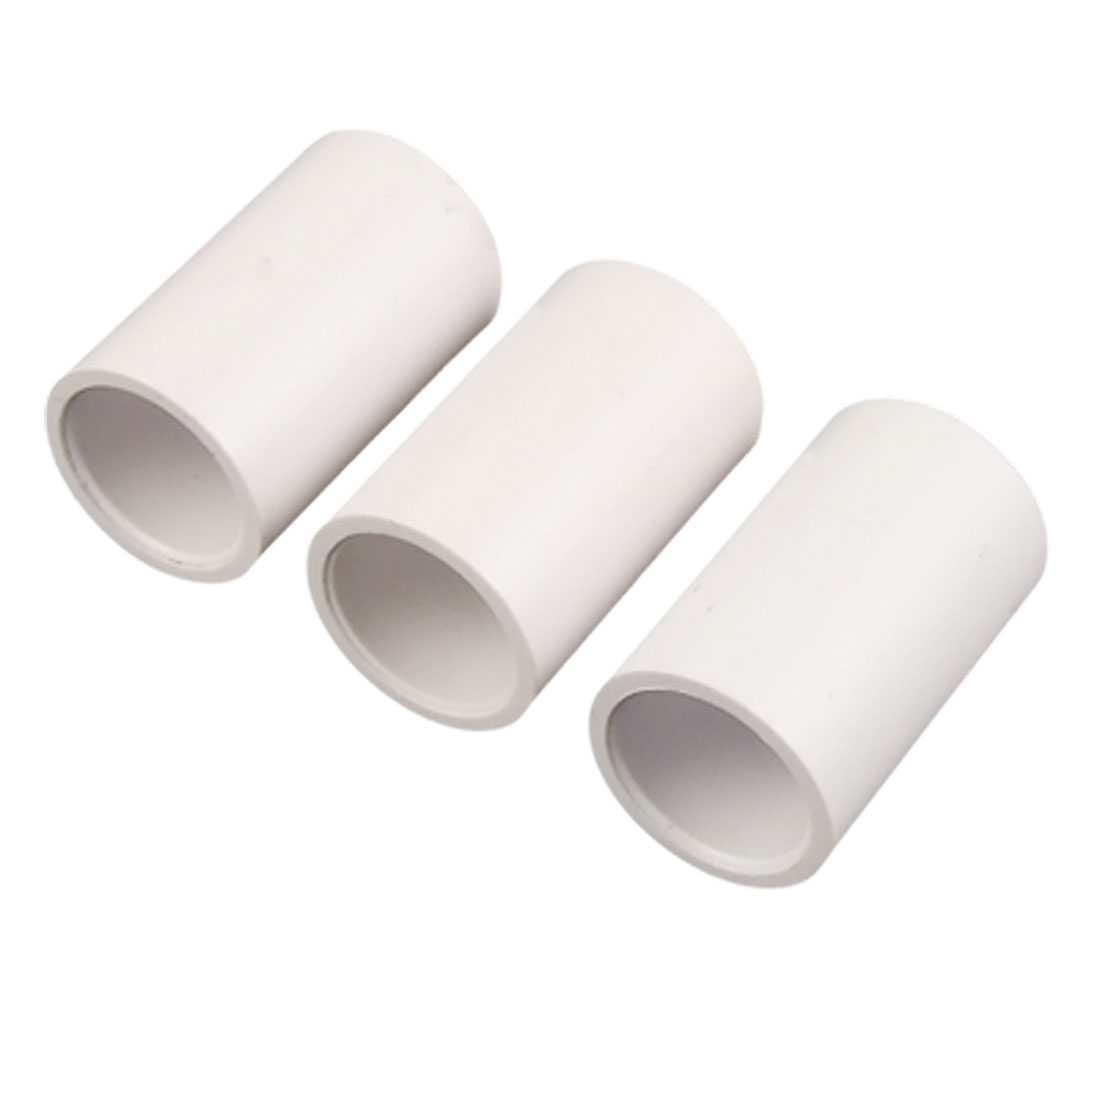 3 Pcs White PVC-U Water Piping Straight Adapter Connectors